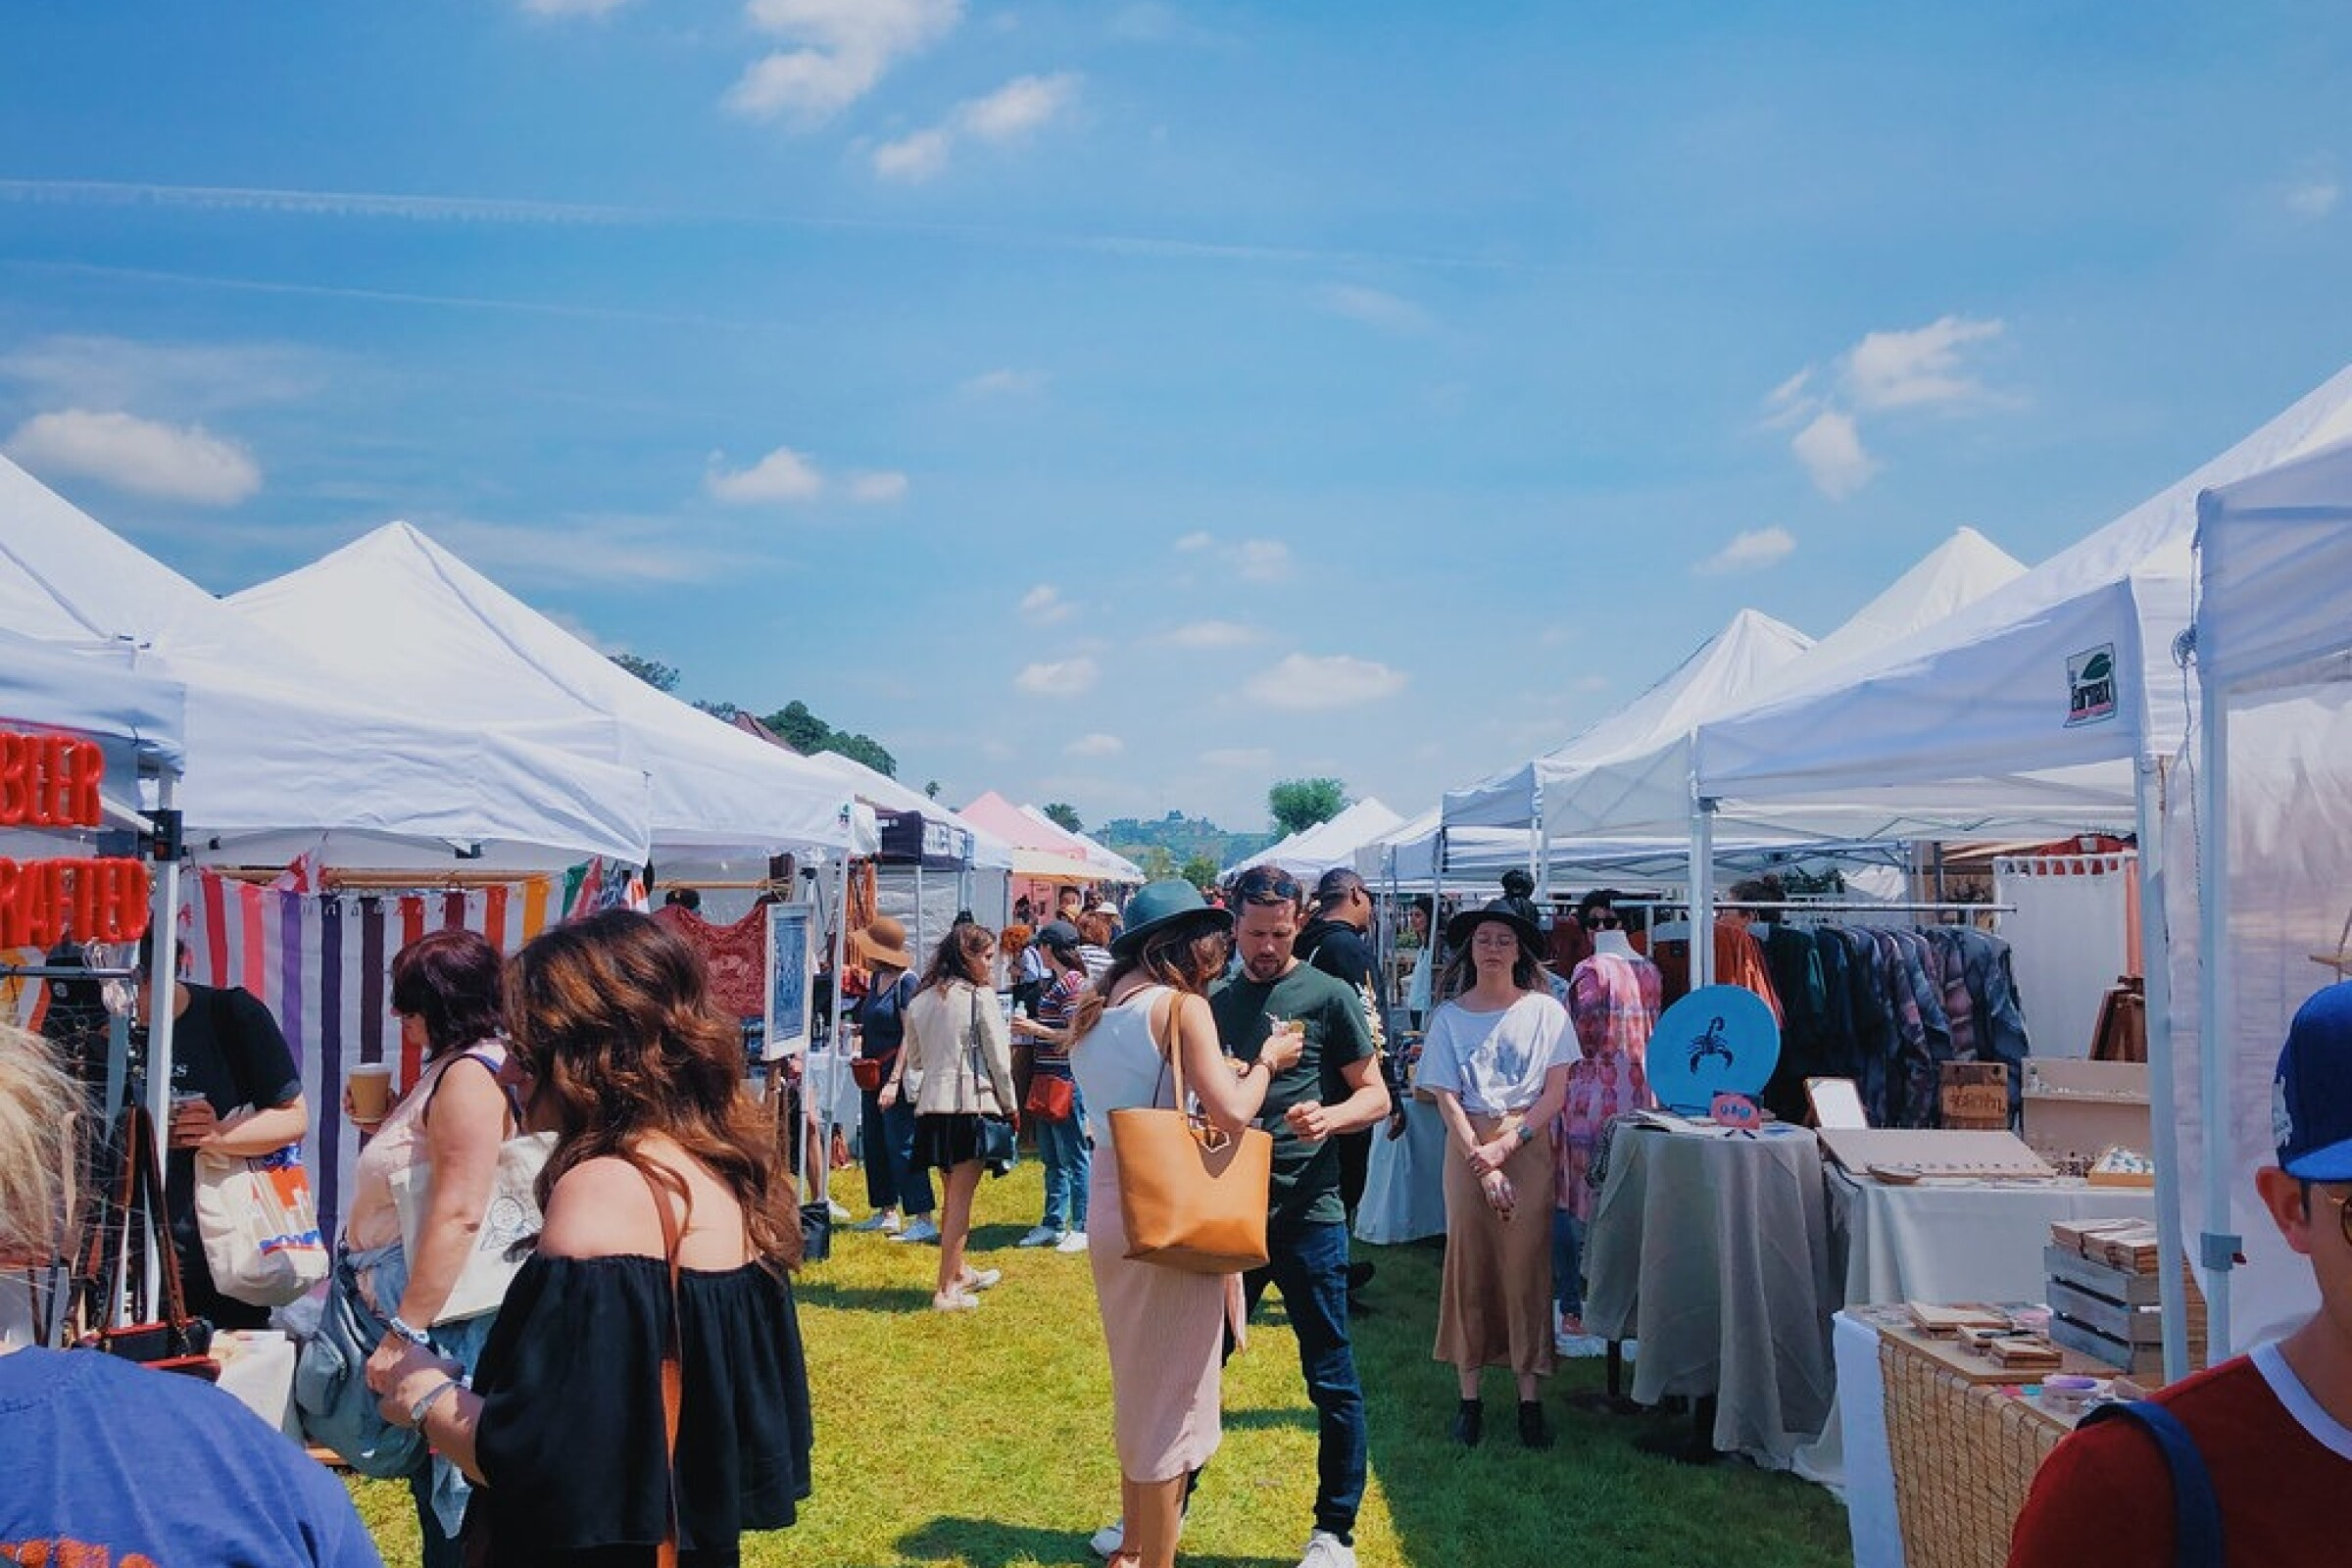 Last year's Renegade Craft Fair was held outdoors at the Los Angeles State Historic Park.